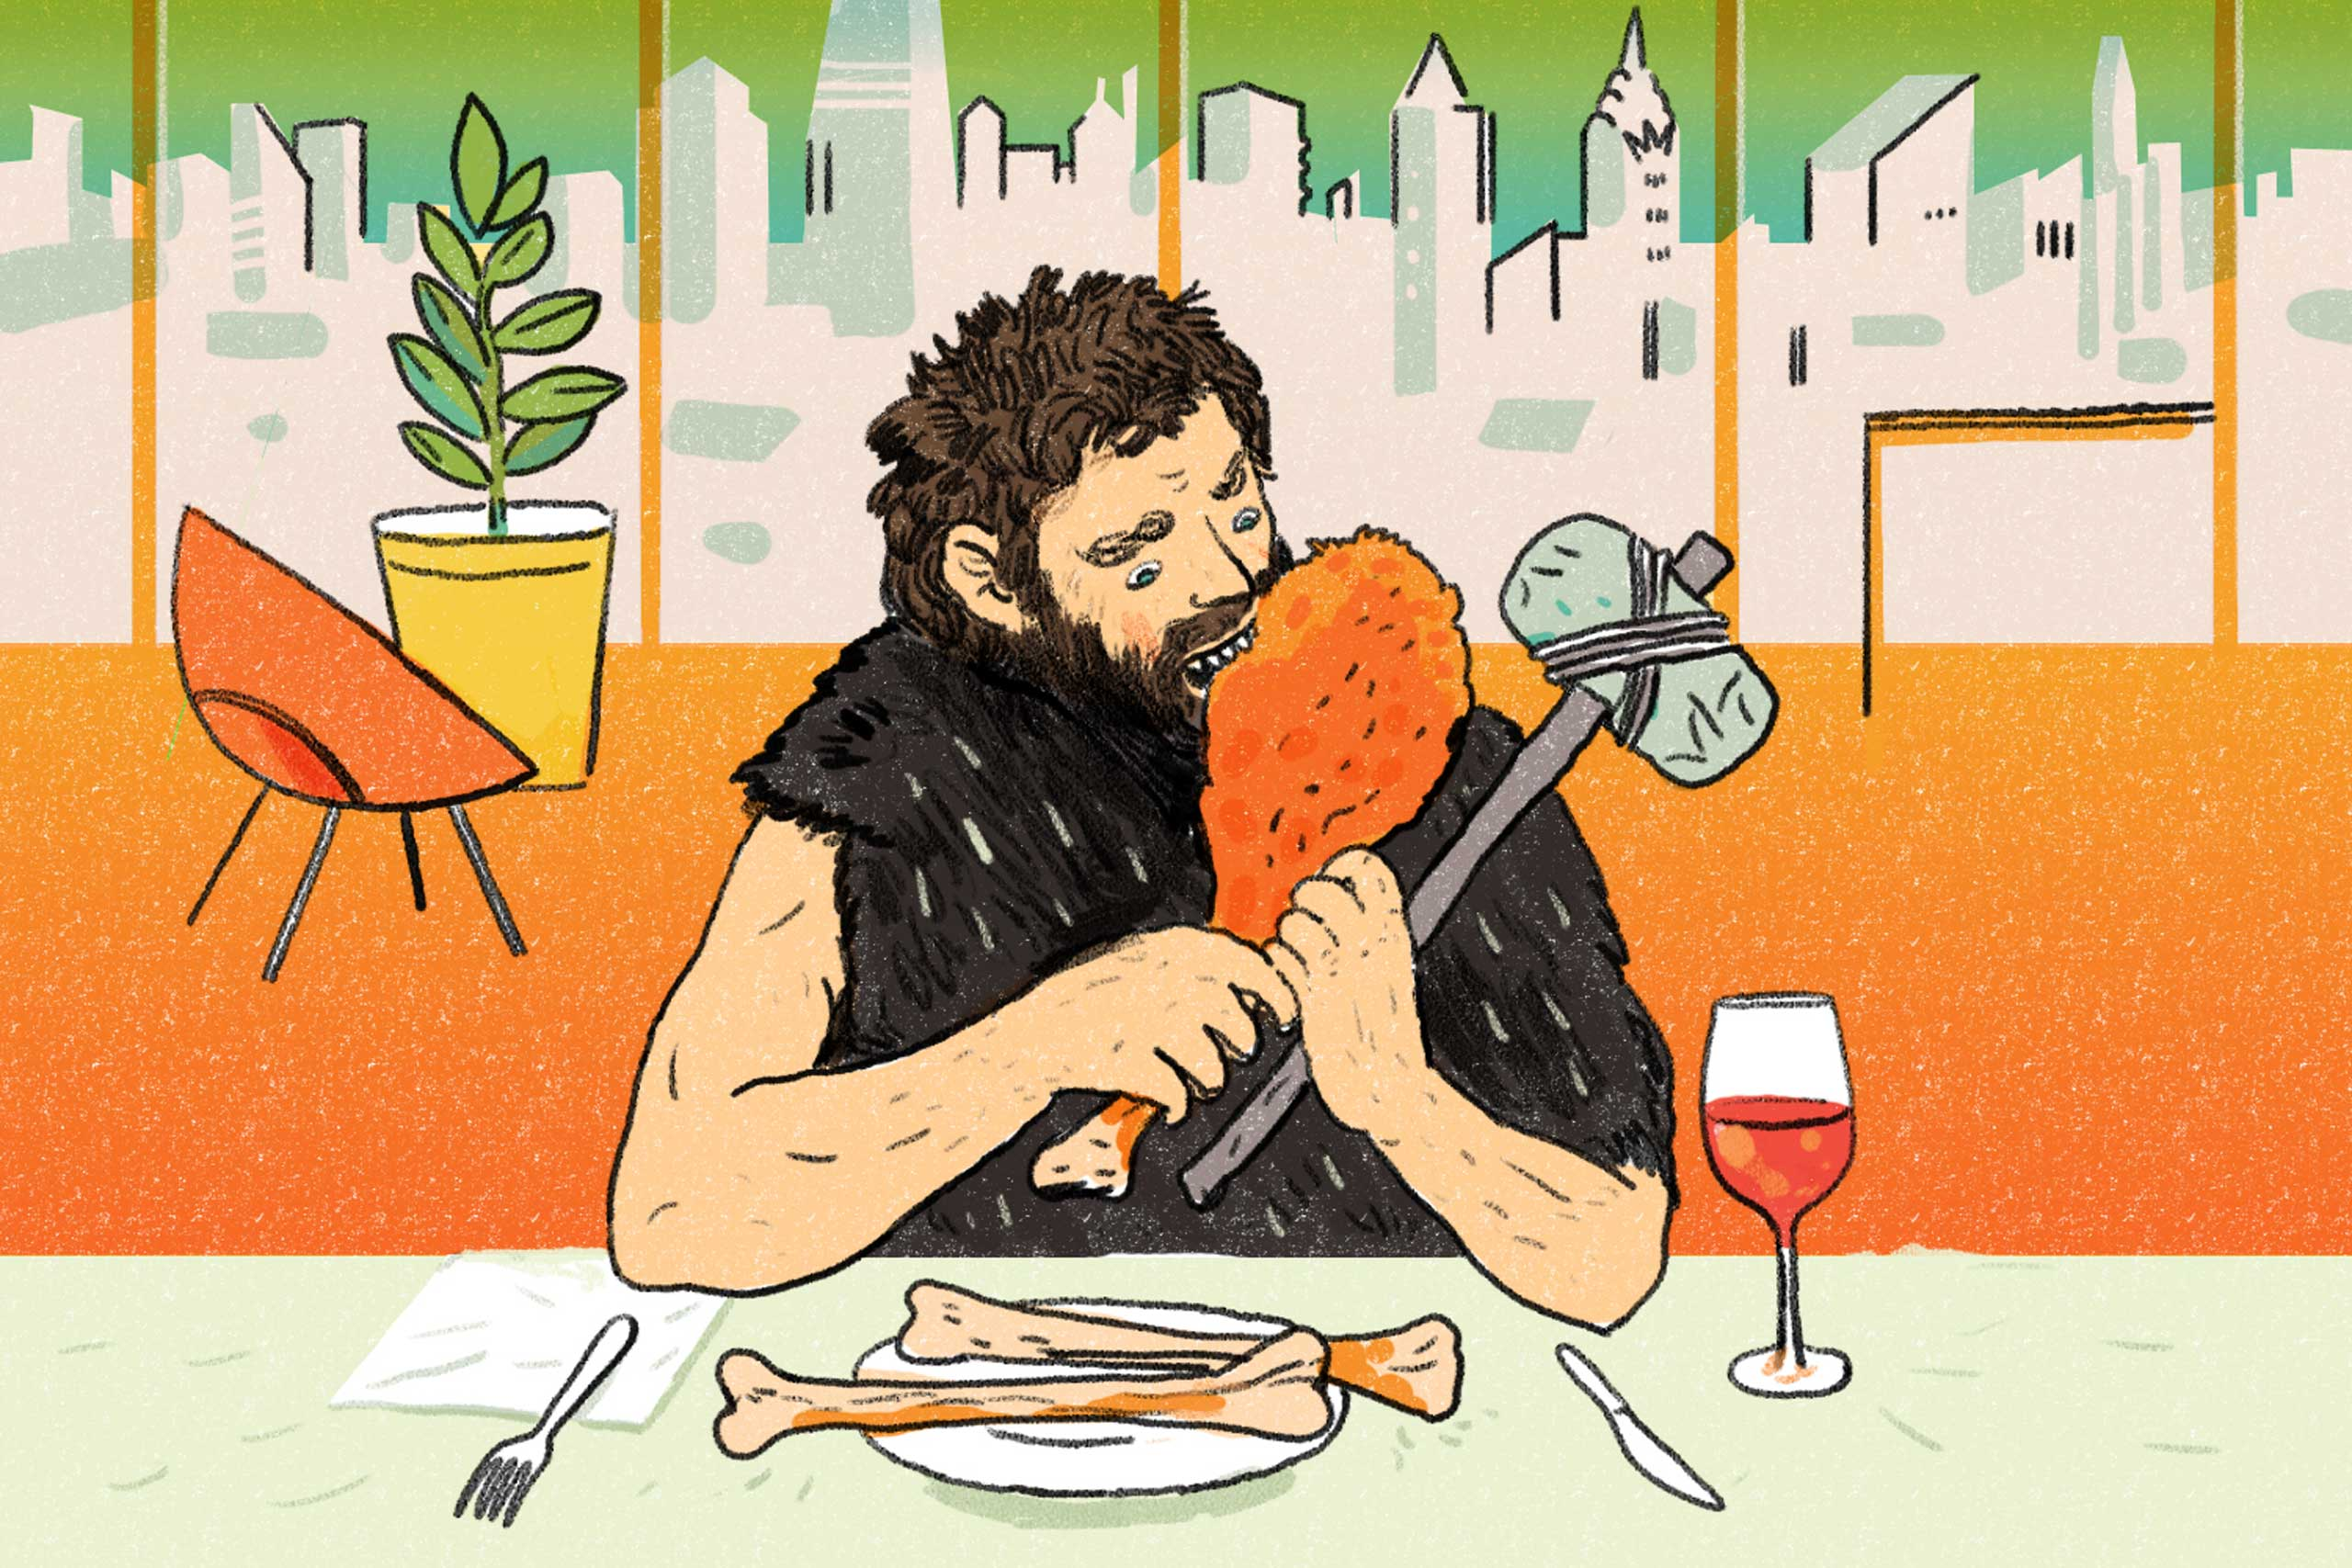 "<strong><a href=""http://time.com/3614394/paleo-diet"" target=""_blank"">You Asked: Should I Go Paleo?</a></strong> The pros and cons of eating like a caveman."